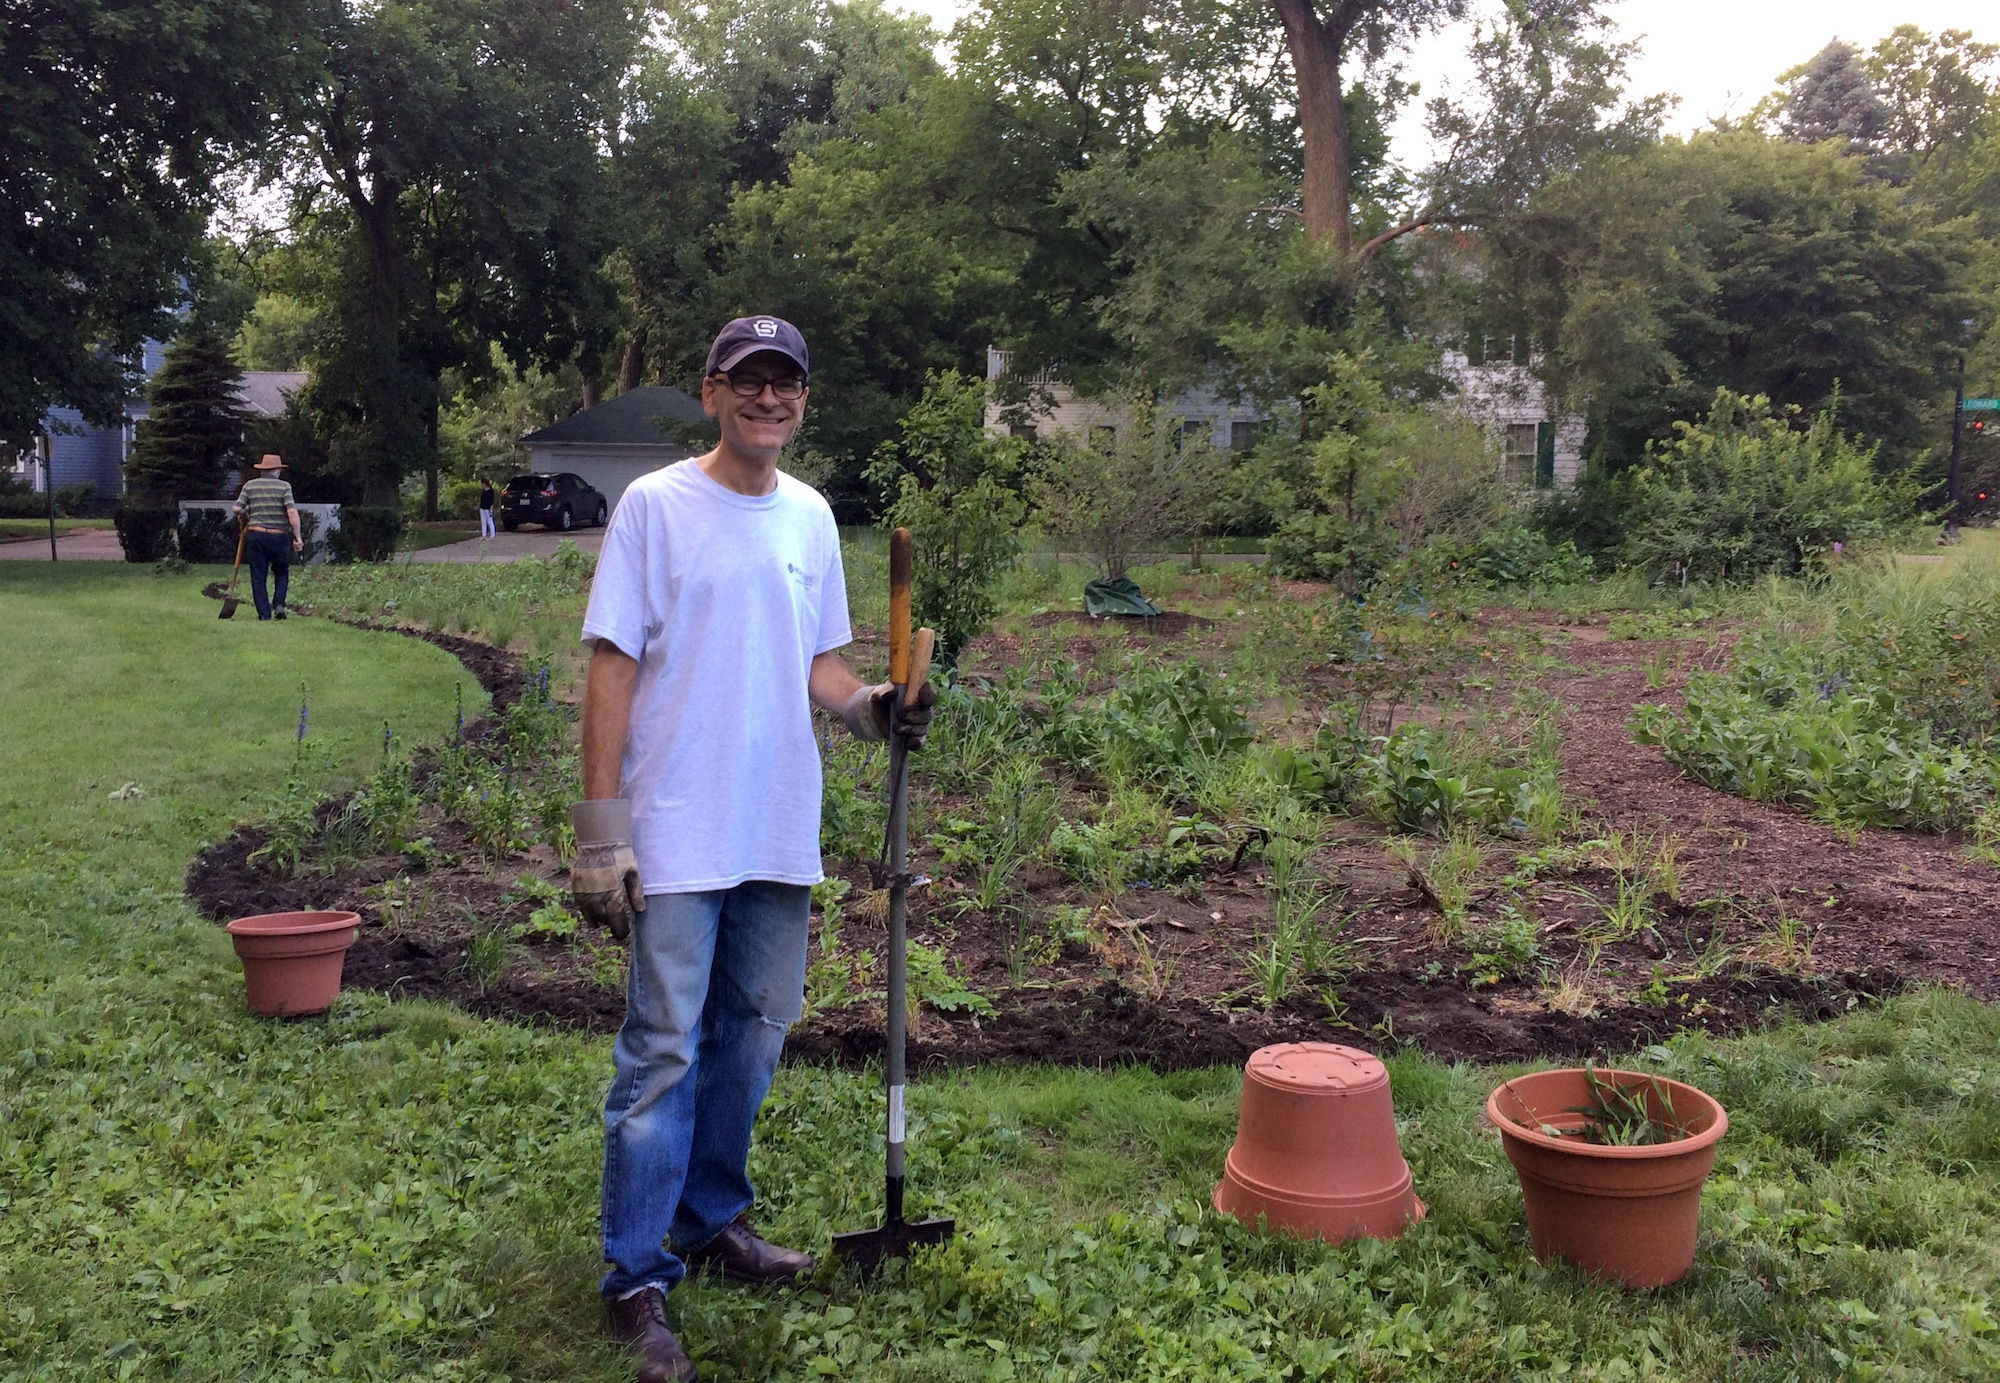 Peter Glaser, organizer of the Civic Center garden neighborhood crew